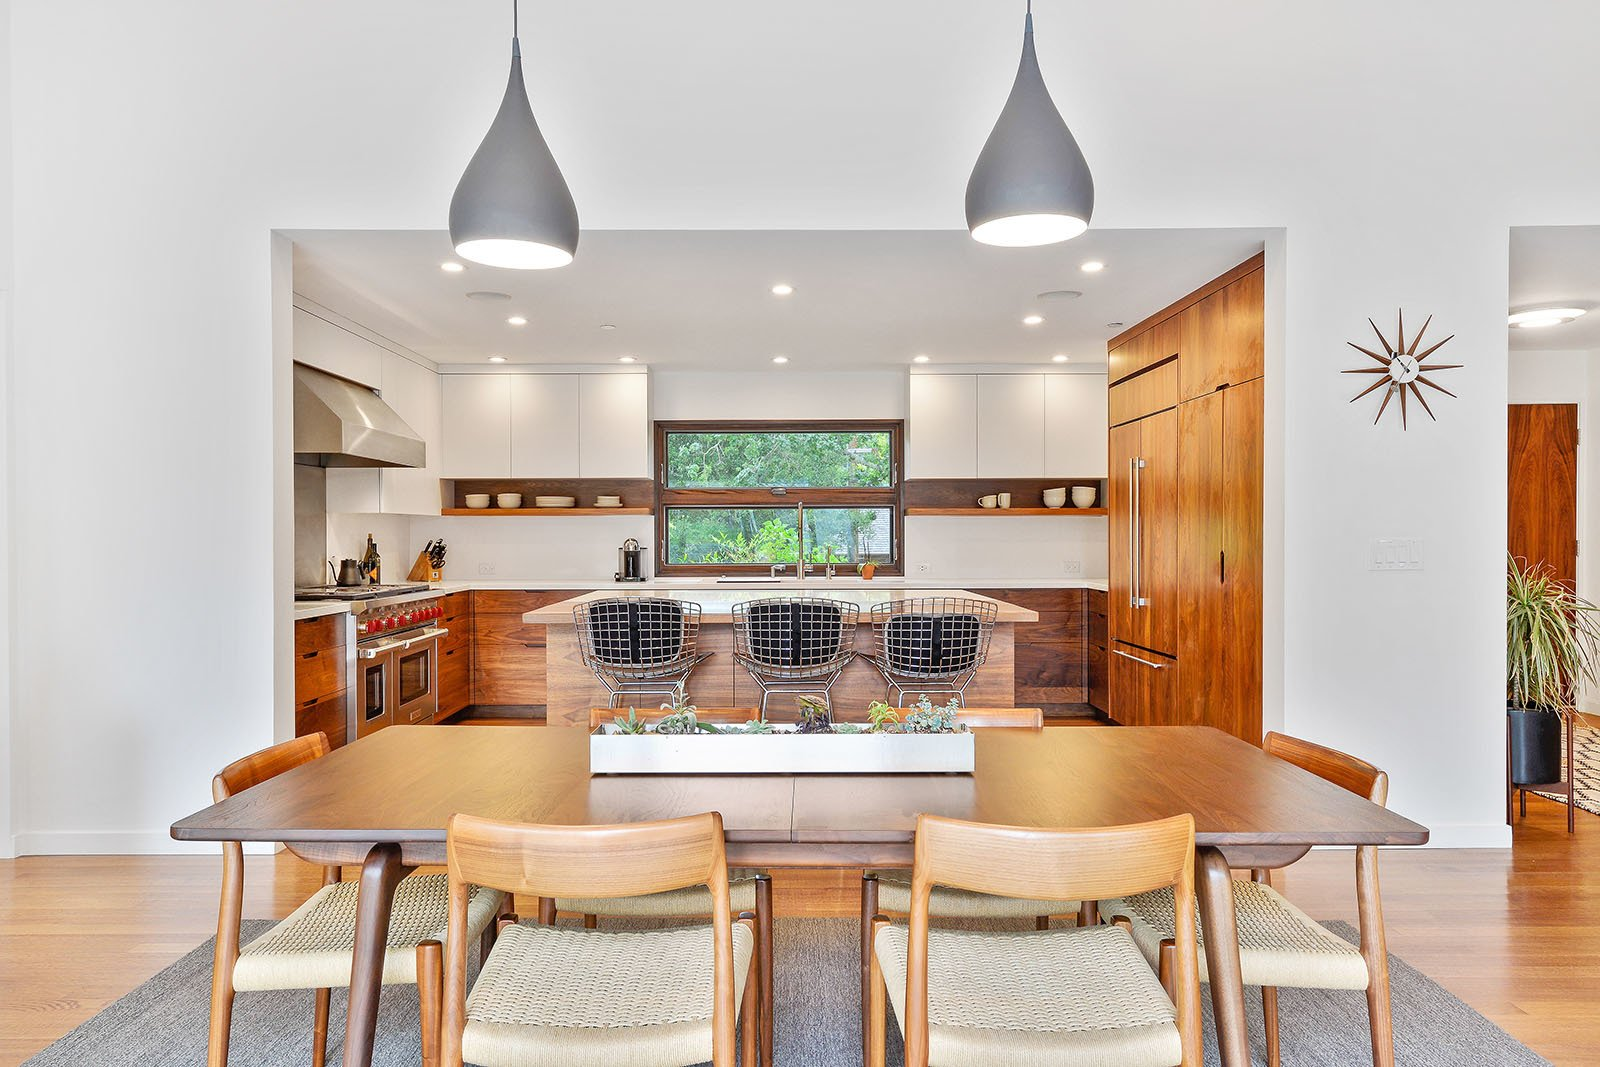 Dining Room, Table, Lamps, Chair, Pendant Lighting, Medium Hardwood Floor, and Ceiling Lighting Dining room  Portola Valley by patrick perez/designpad architecture